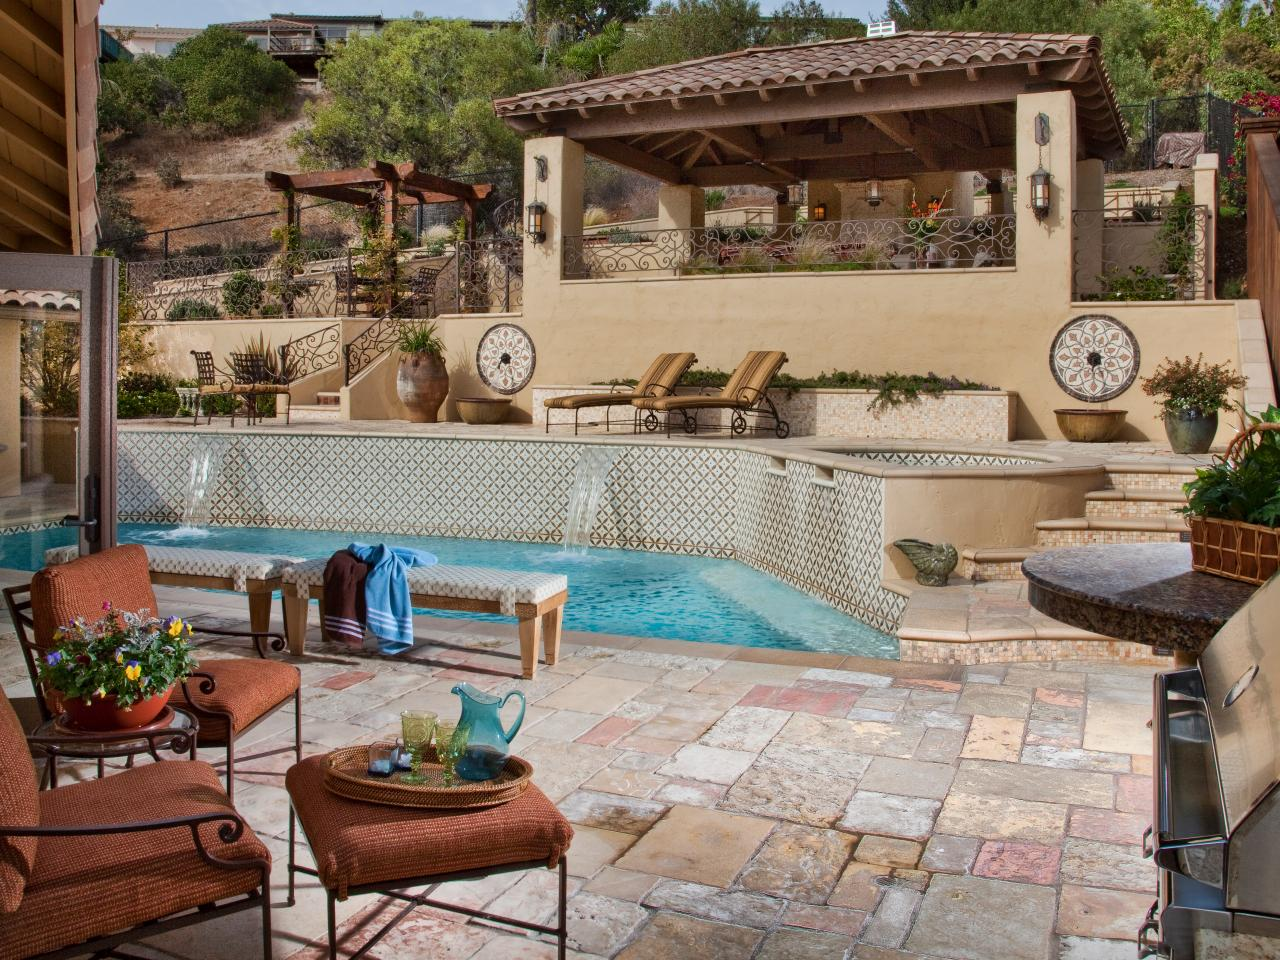 Pool Deck Ideas above ground pool deck ideas image Design A Pool Deck Or Patio